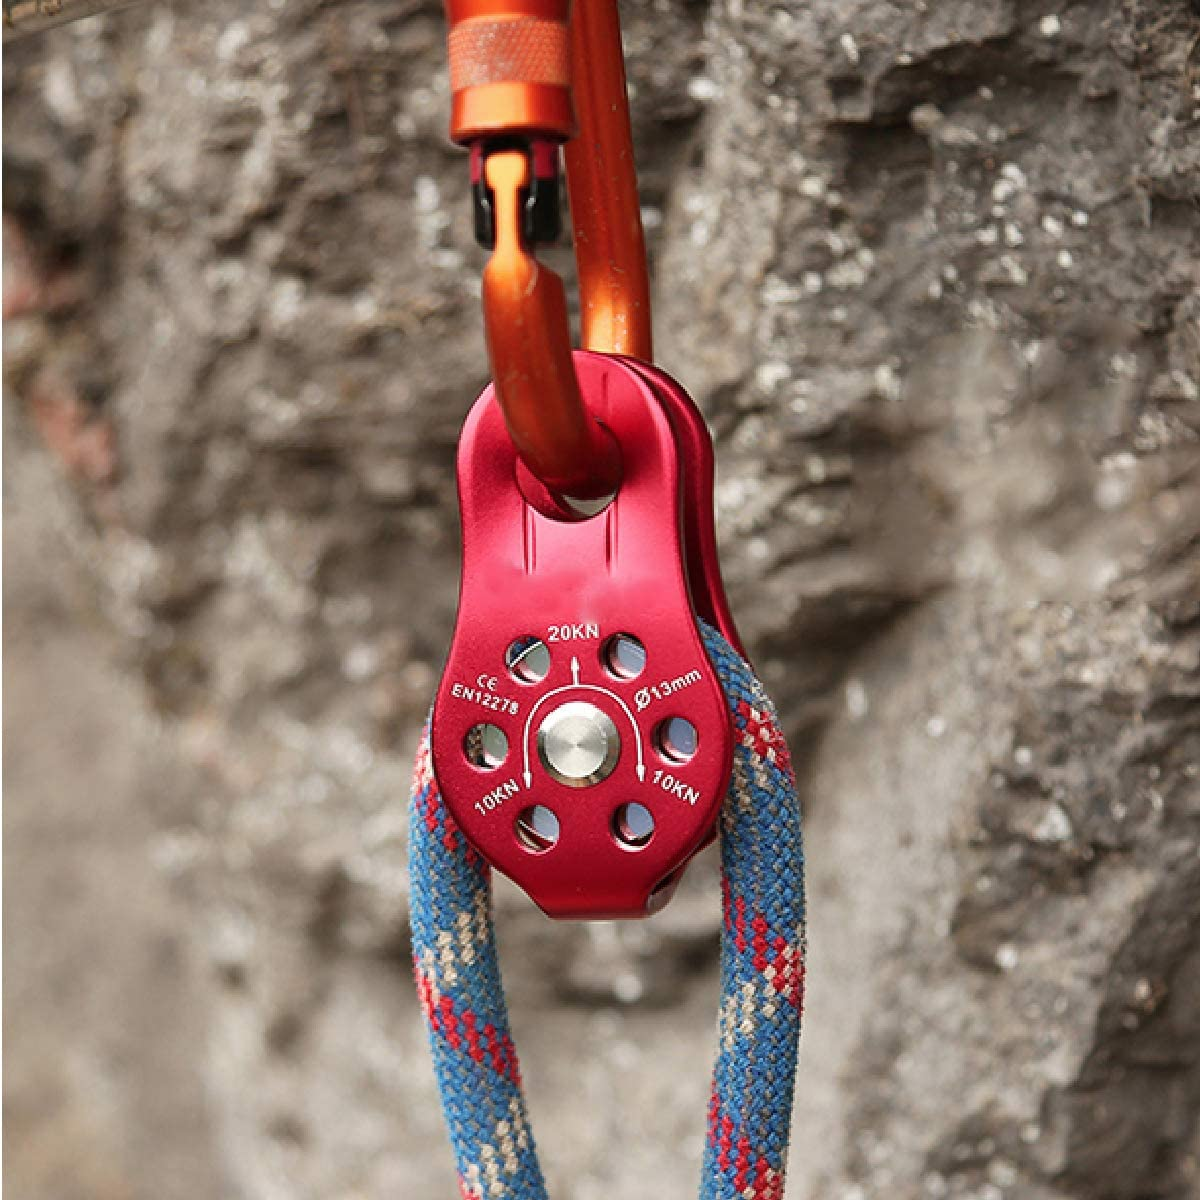 TRIWONDER 20kN Climbing Pulley Rescue Pulley Single Sheave Aluminum Fixed Eye Rock Rope Pulley